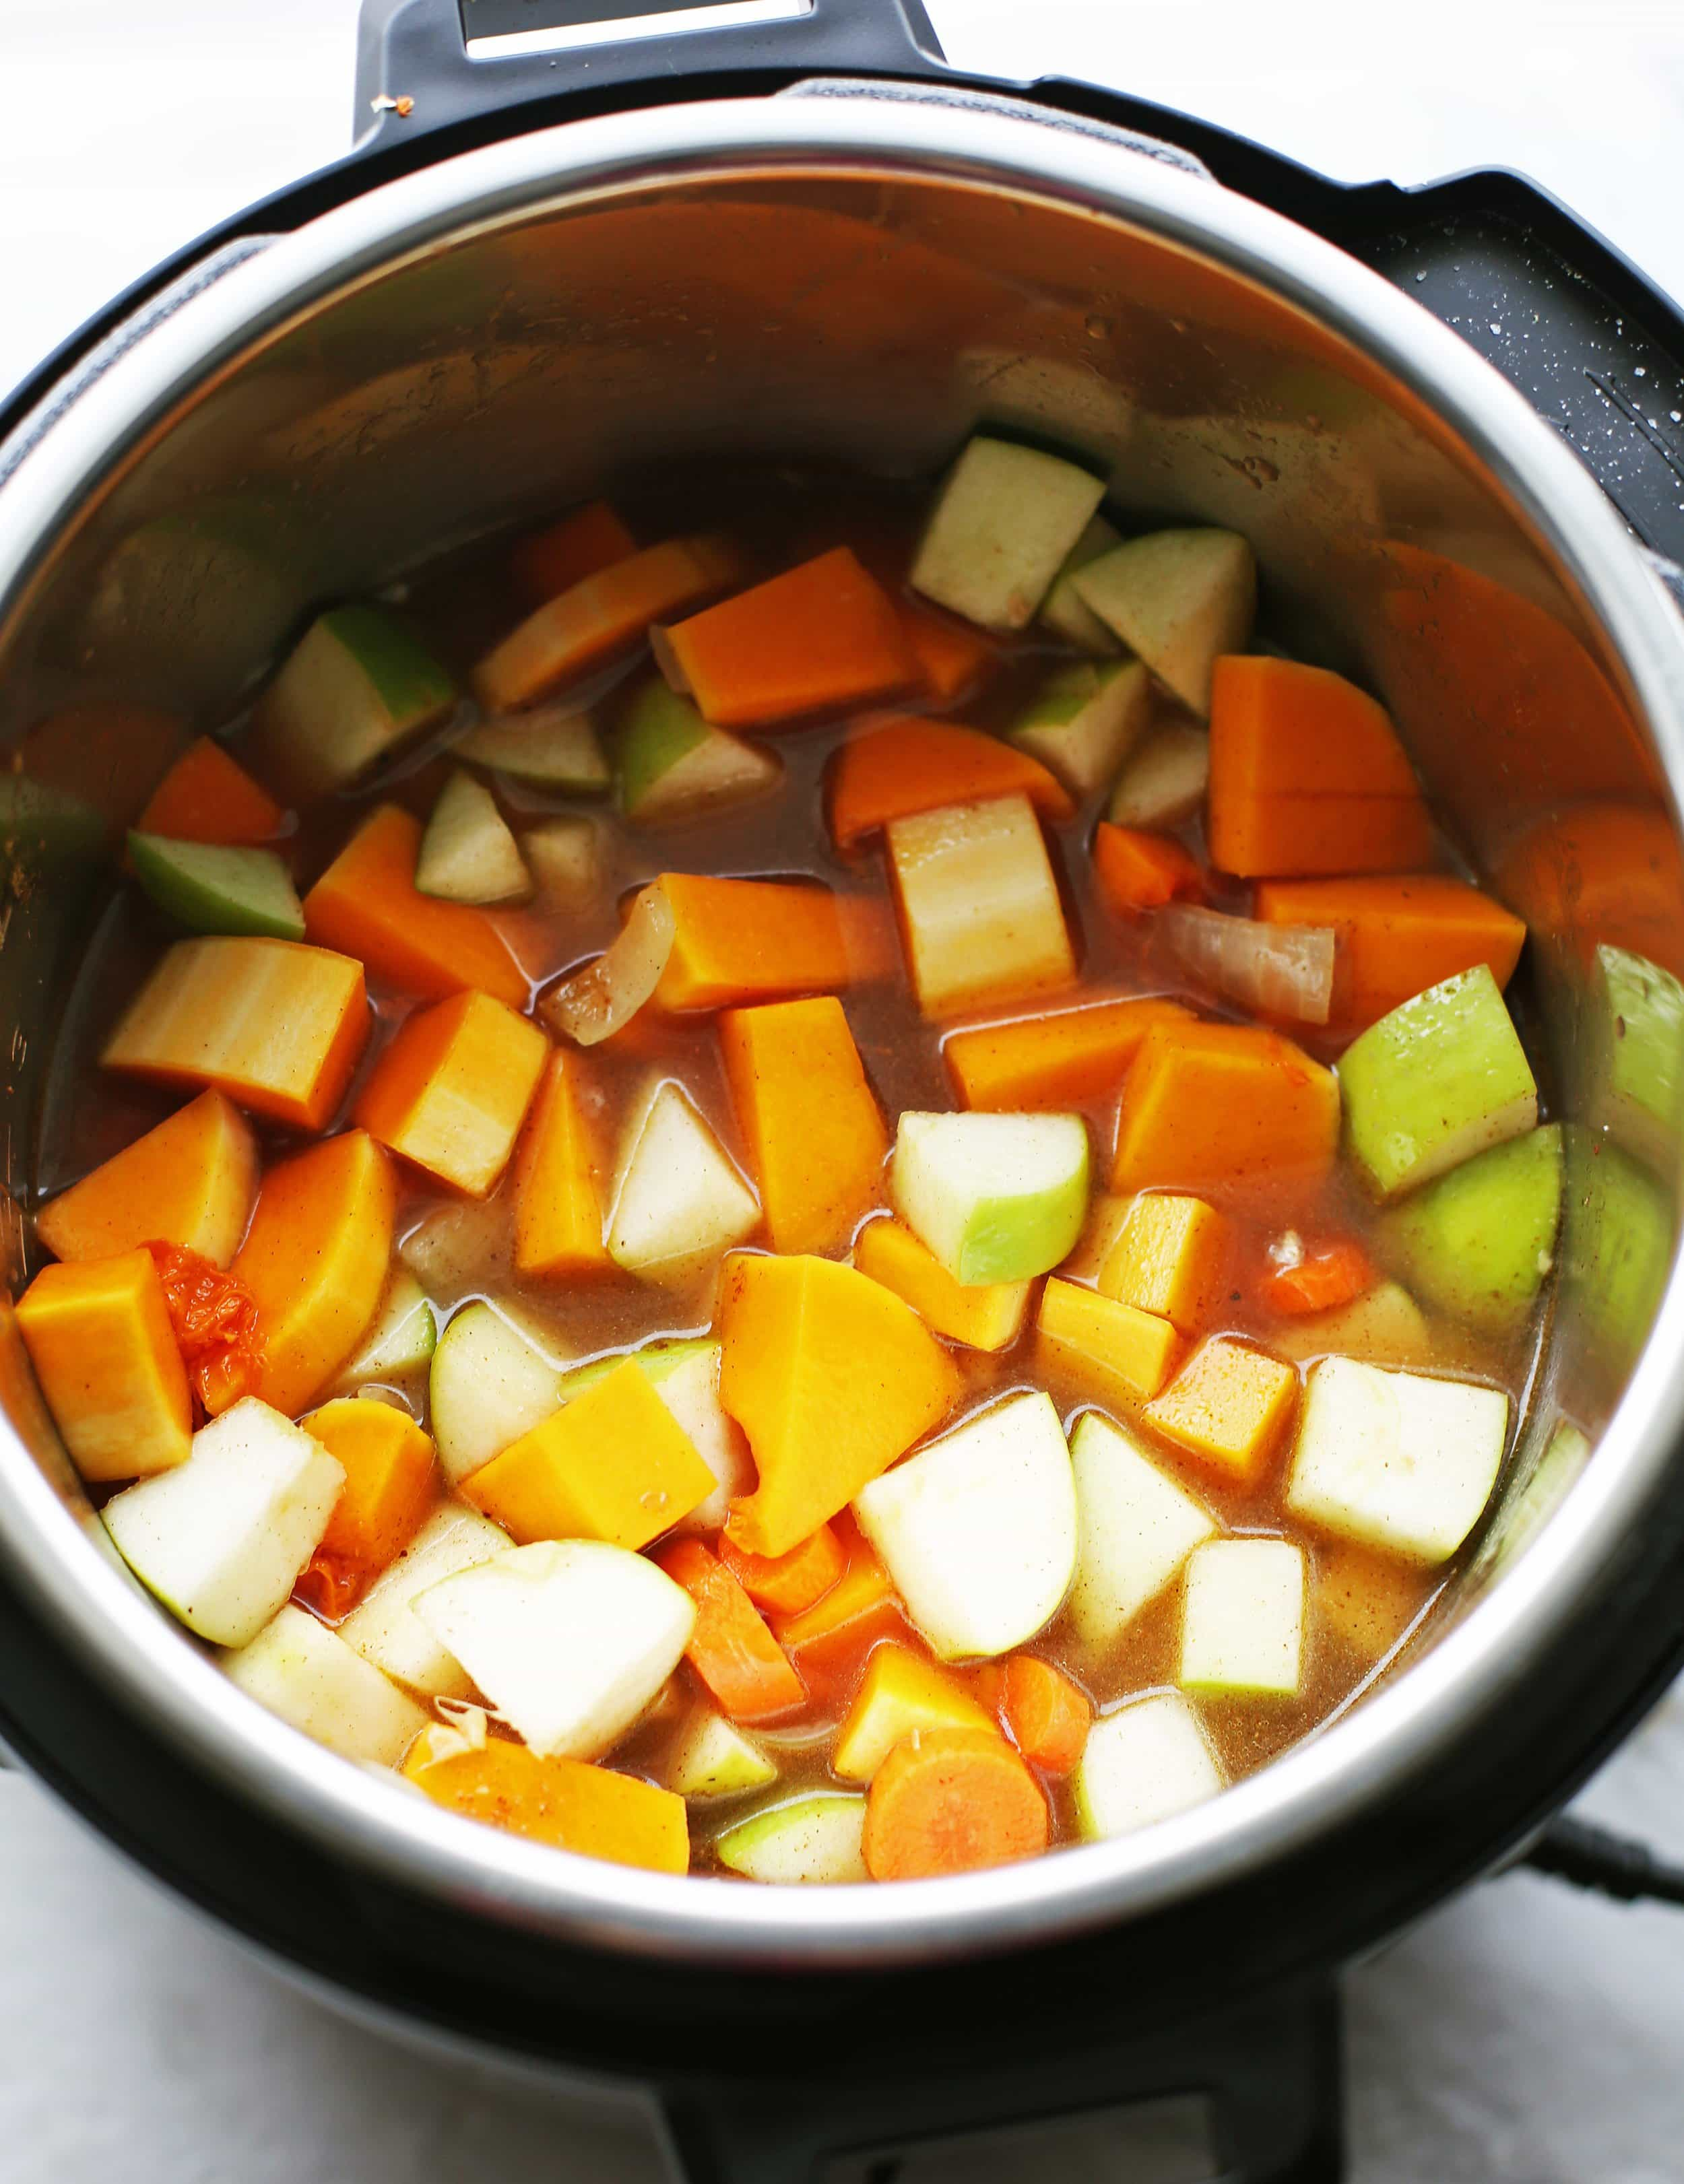 Sautéed onions, ginger, and garlic with chopped butternut squash, granny smith apples, carrots, spices, and vegetable broth are mixed in the Instant Pot.